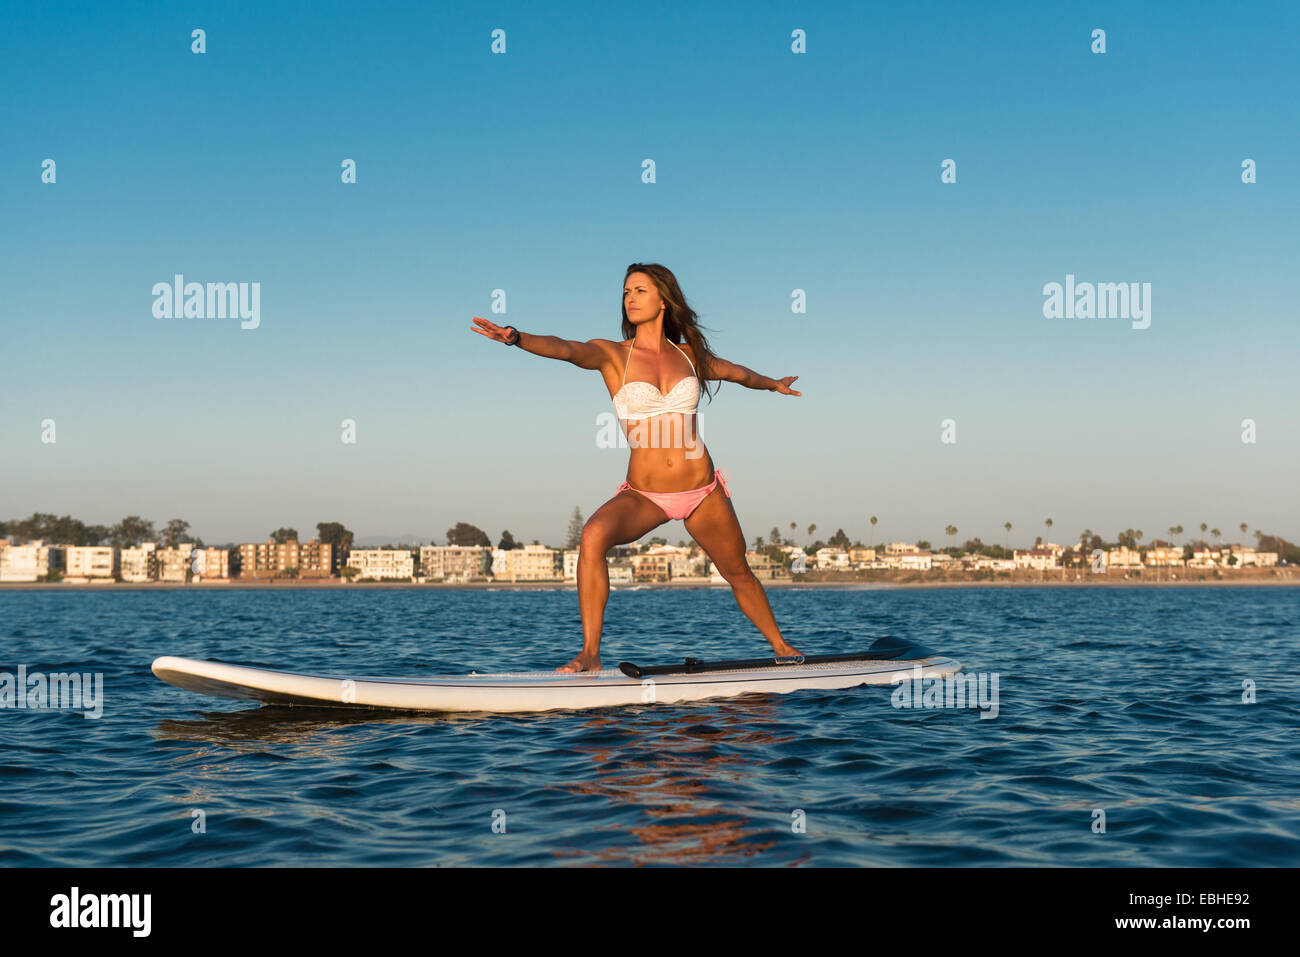 Young woman practicing yoga position on paddleboard, Mission Bay, San Diego, California, USA - Stock Image